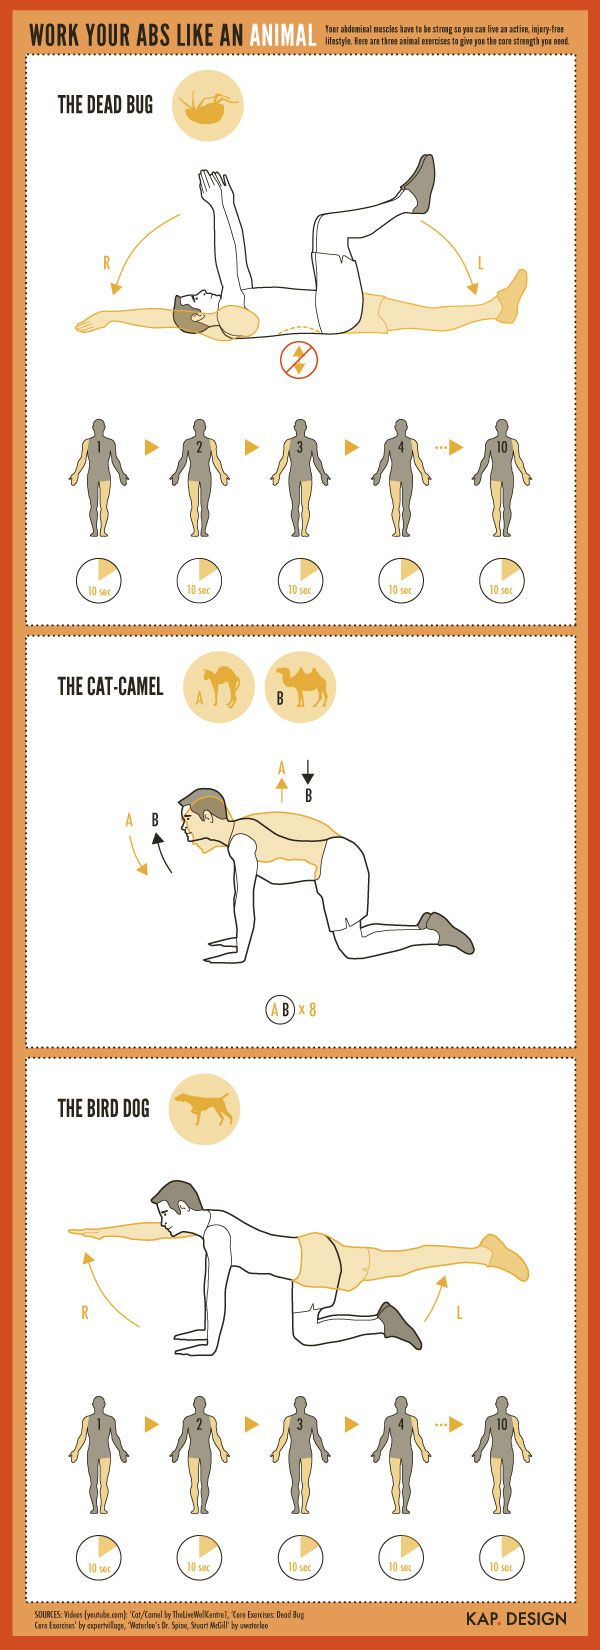 There are three core exercises that mimic animals and insects. The goal of this infographic was to communicate these exercises without words.